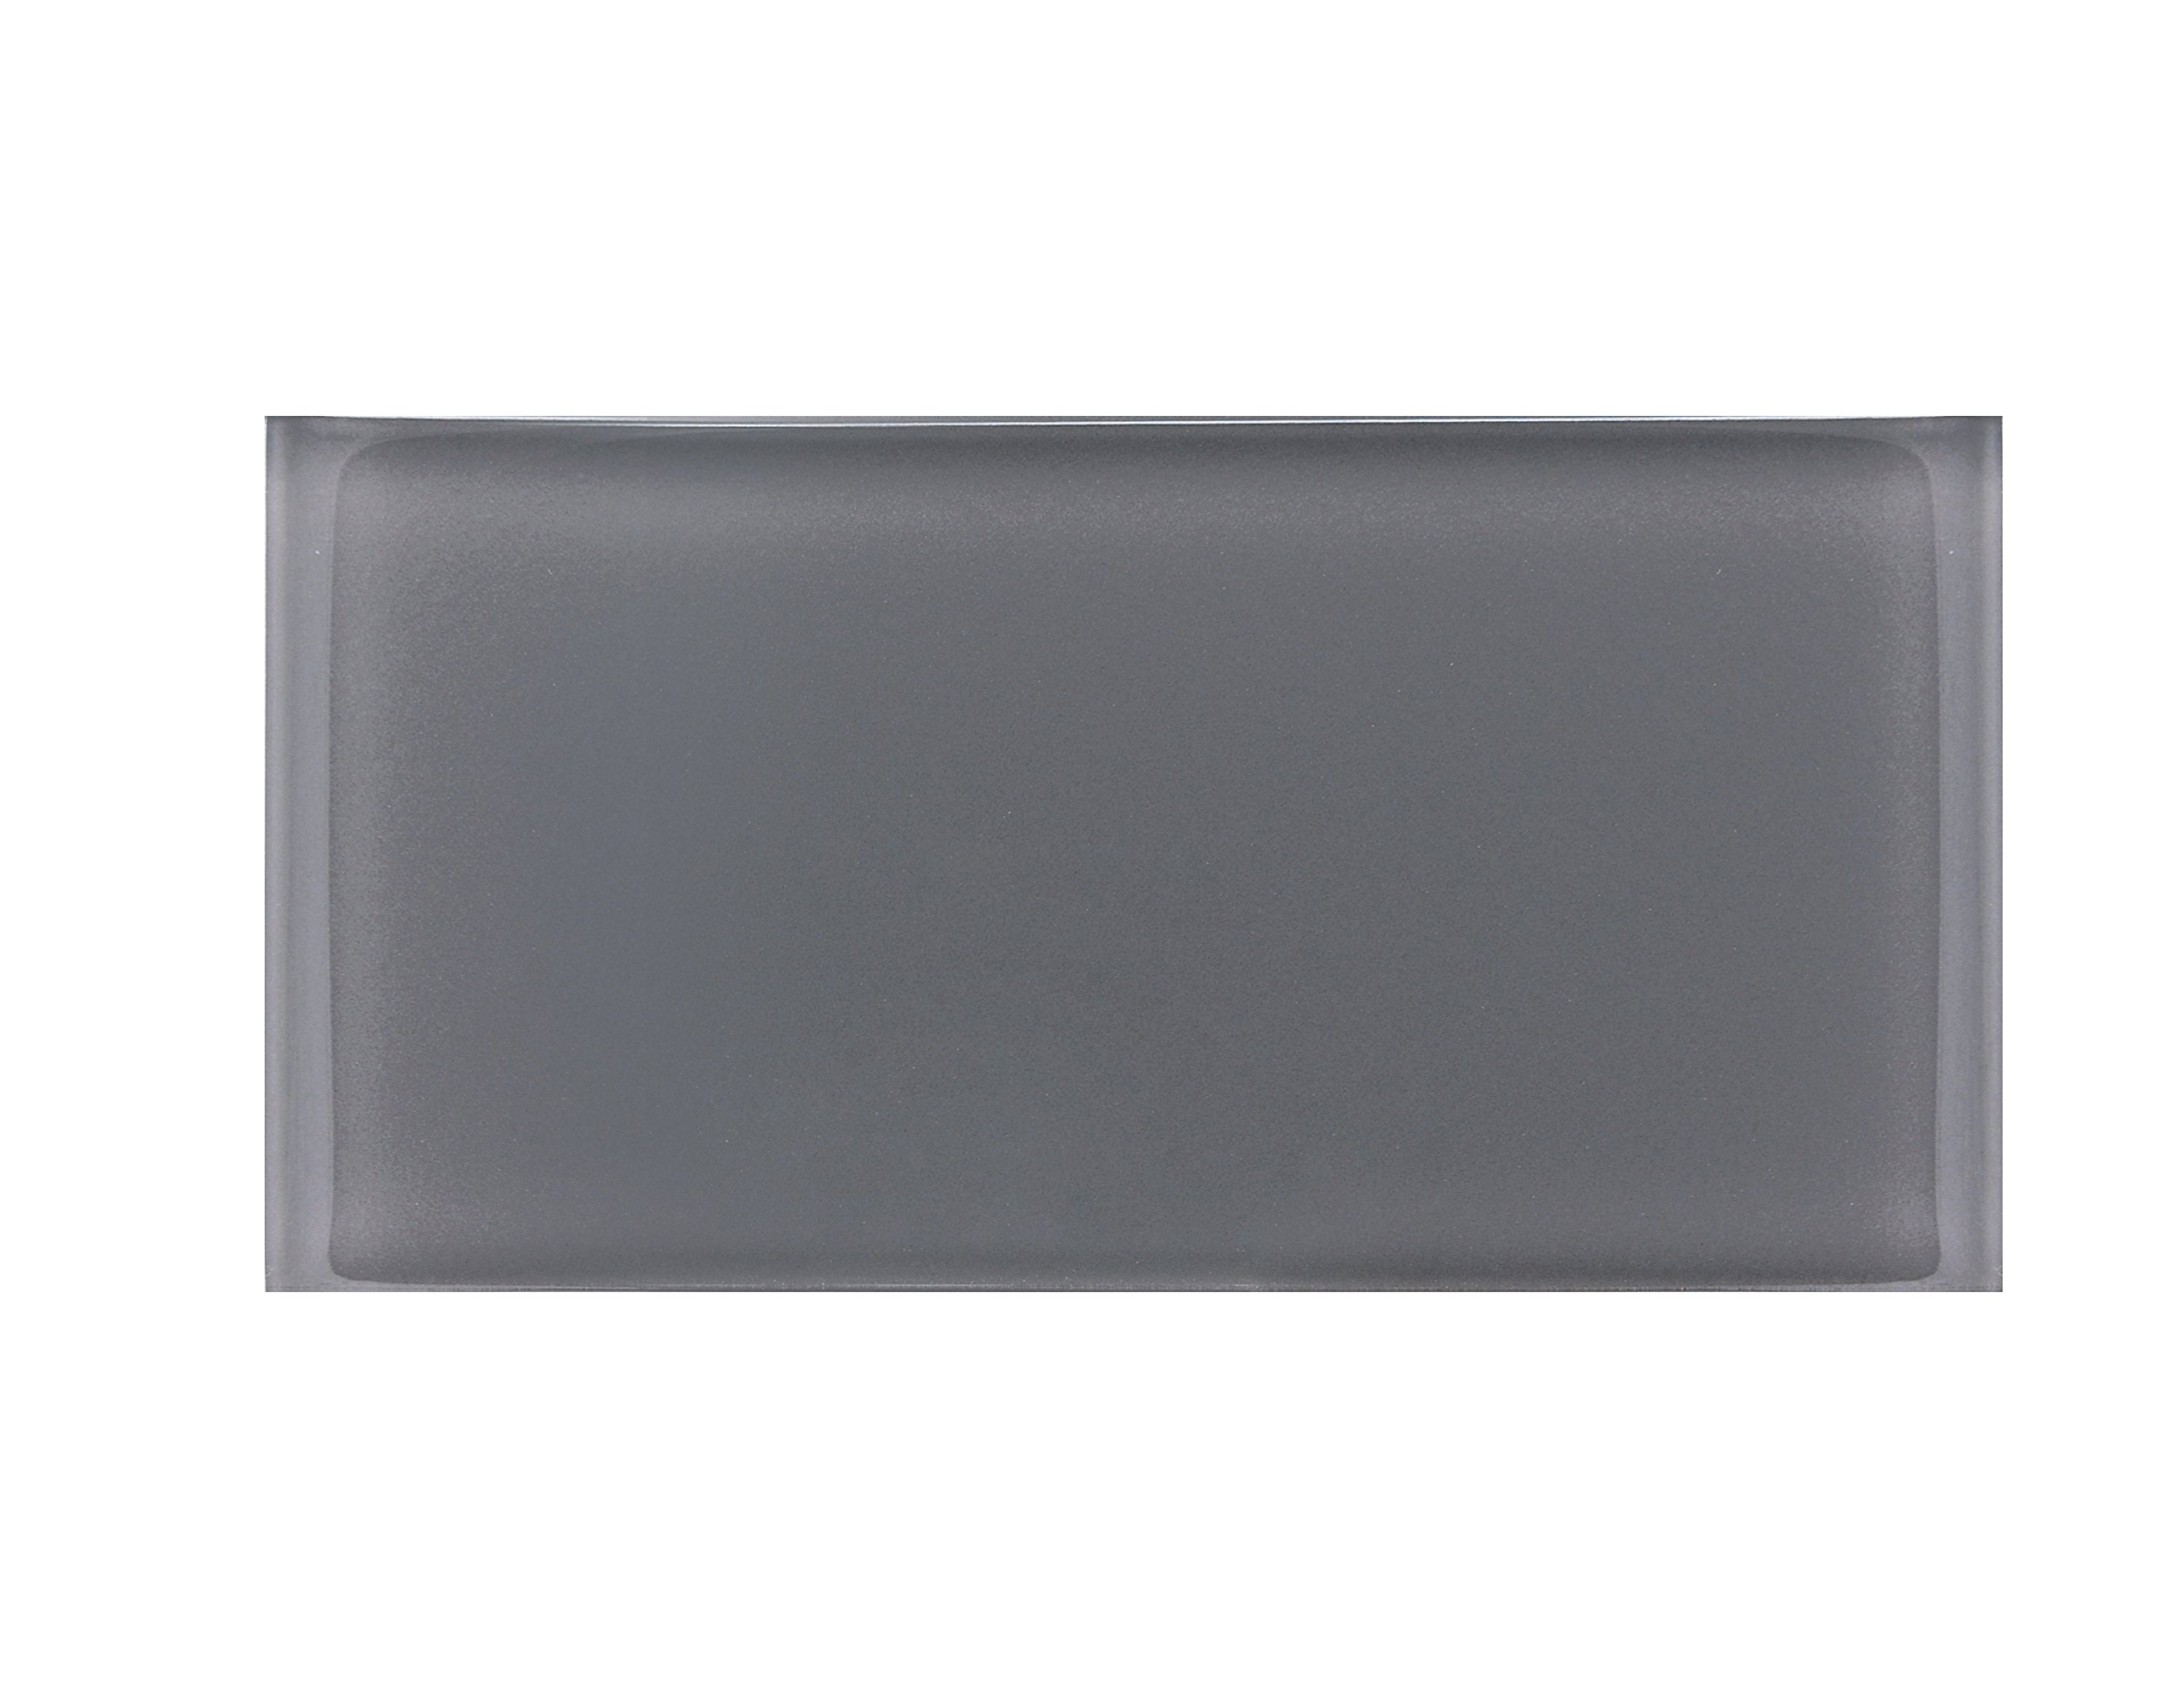 3''x6'' Gray Crystal Glass Subway Tile for Kitchen Bathroom Shower Wall (Box of 5 sq ft $79)